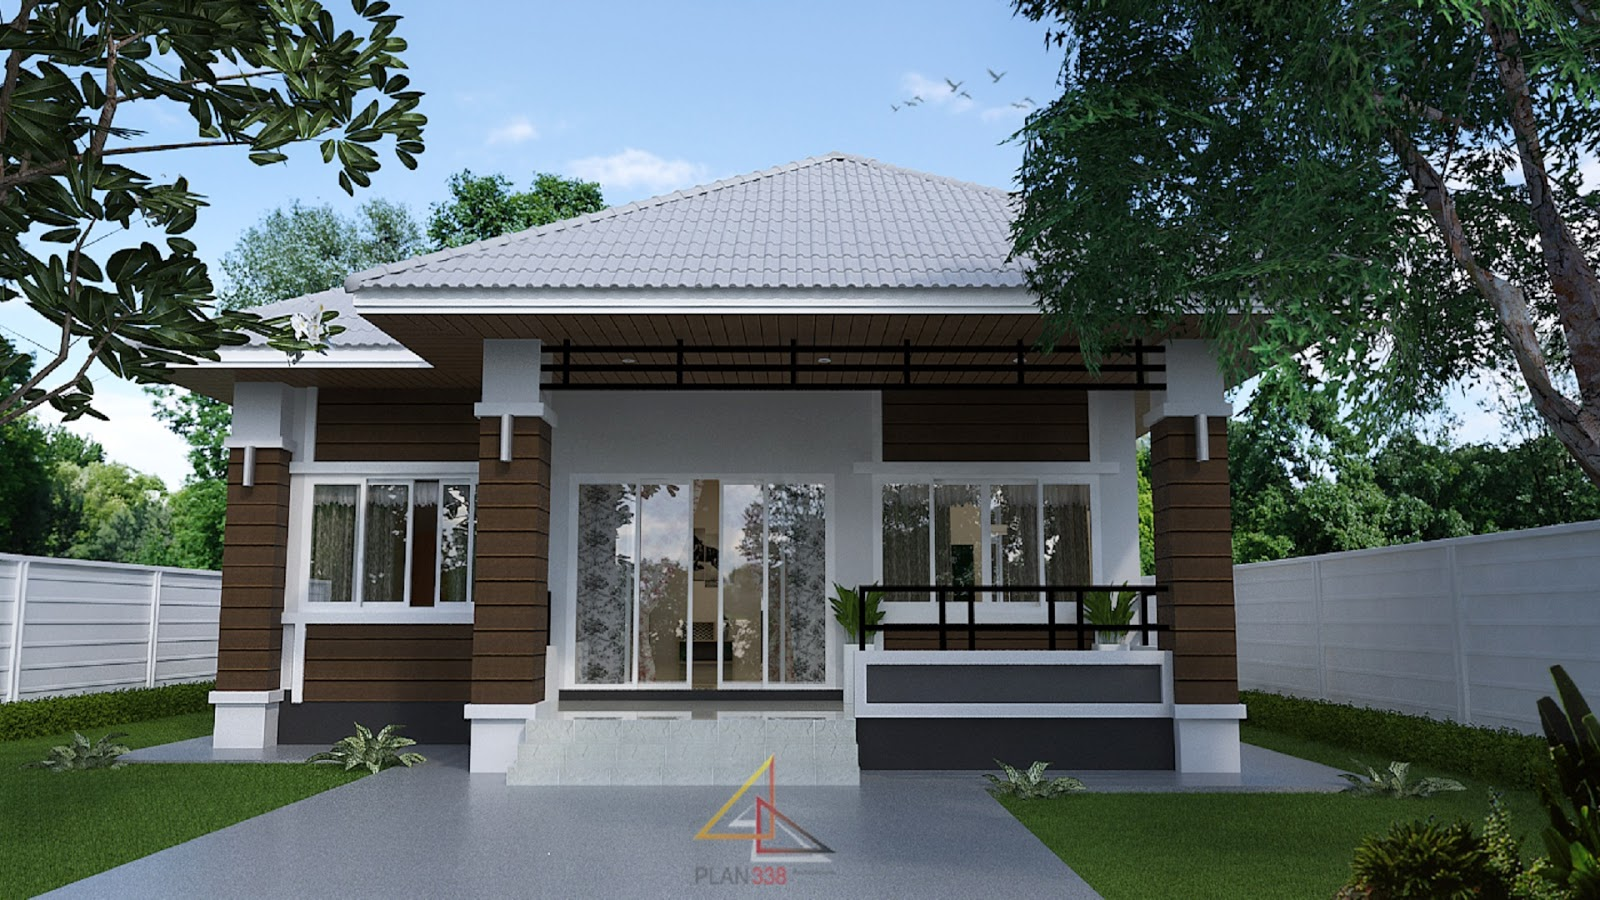 When it is time to build a house for your own family, it is important to consider their needs and get as many ideas you can for your plan. For a family with two or more children, a house with three bedrooms can be considered perfect or ideal family home. How about the design of the house? Do you love a spacious so that you and your family can freely move around? Aside from being a comfortable home, we also want a house with a timeless design so it will remain stylish for a long period of time right?  If you are looking for that kind of house, you may get some ideas in this post! We compiled 22 houses with floor plans designed to have two to three-bedrooms to meet the needs of the family. All are projects of ubon338.com in Thailand.